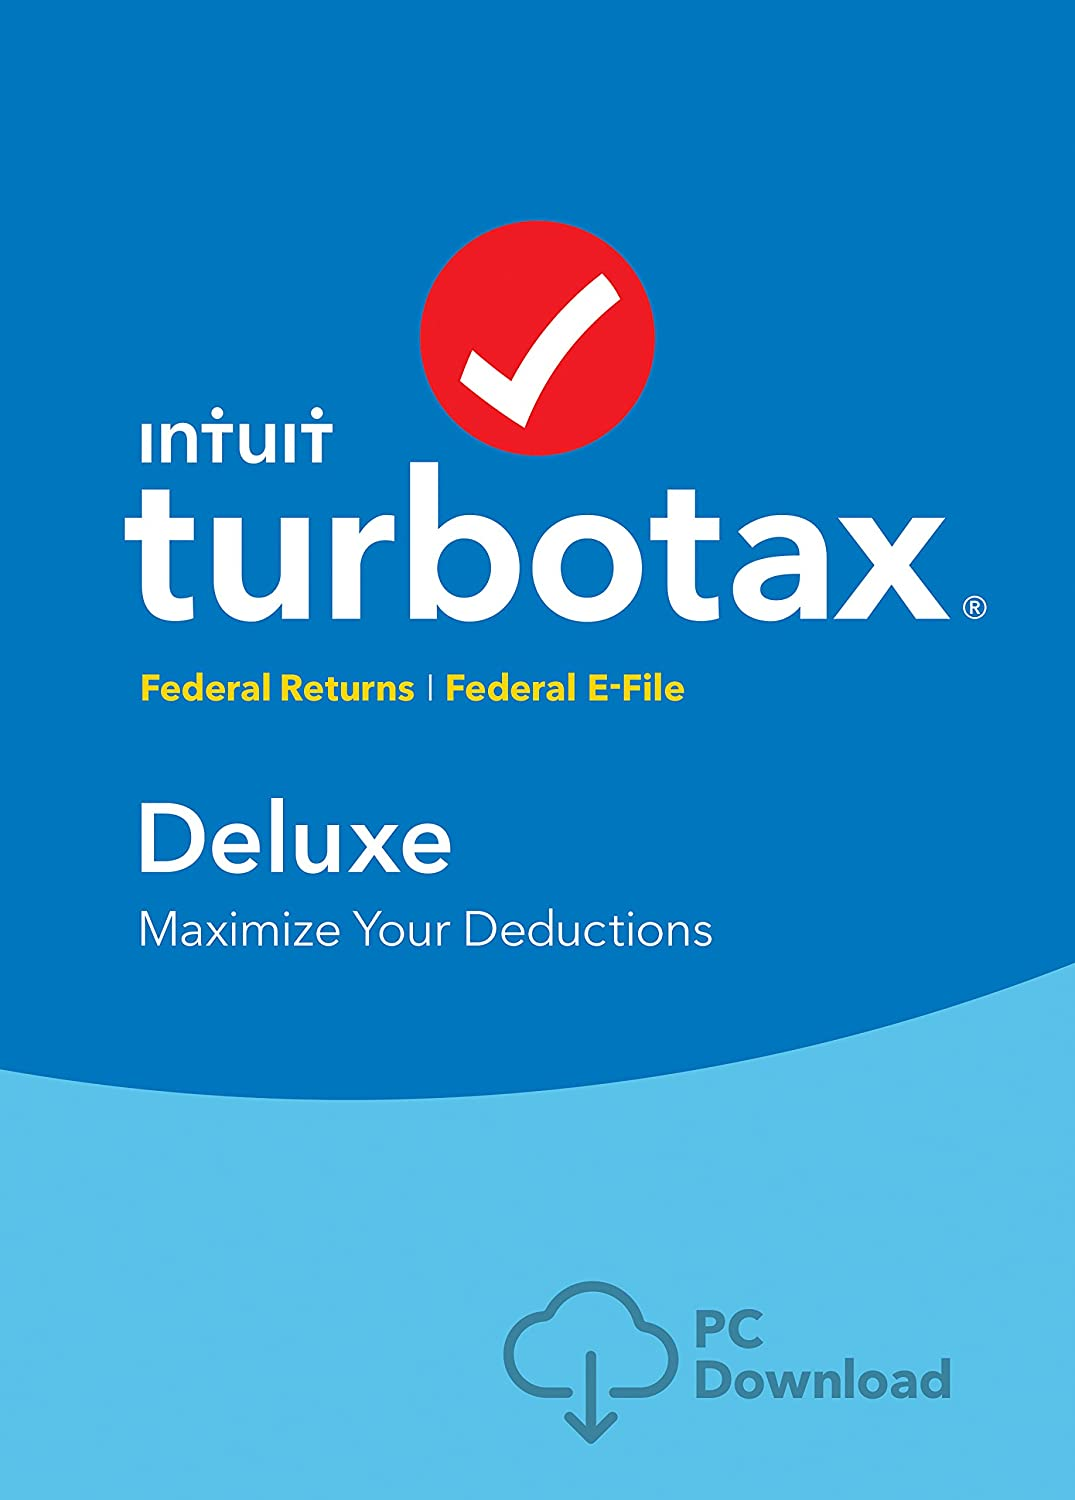 TurboTax Premier + State 2018 Fed Efile MAC Download [Amazon Exclusive] Intuit Inc.